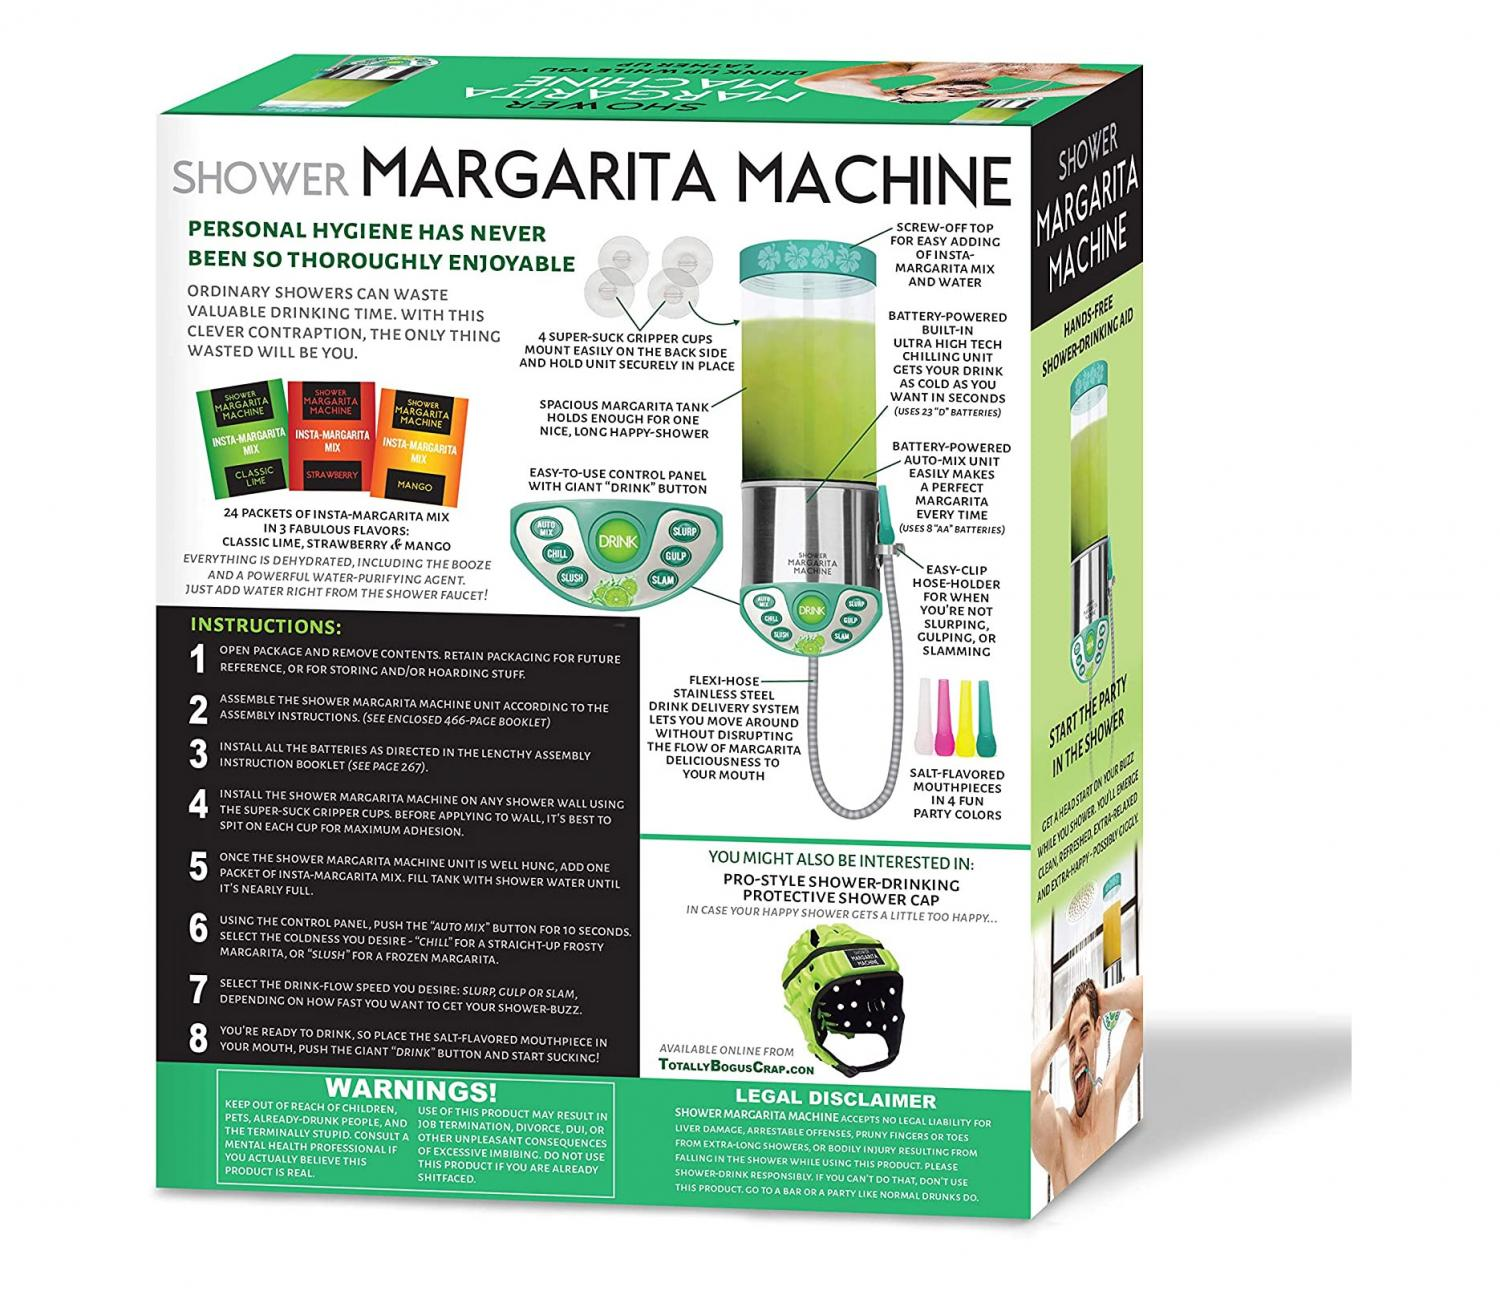 Shower Margarite Machine - Wall mounted margarita machine for shower